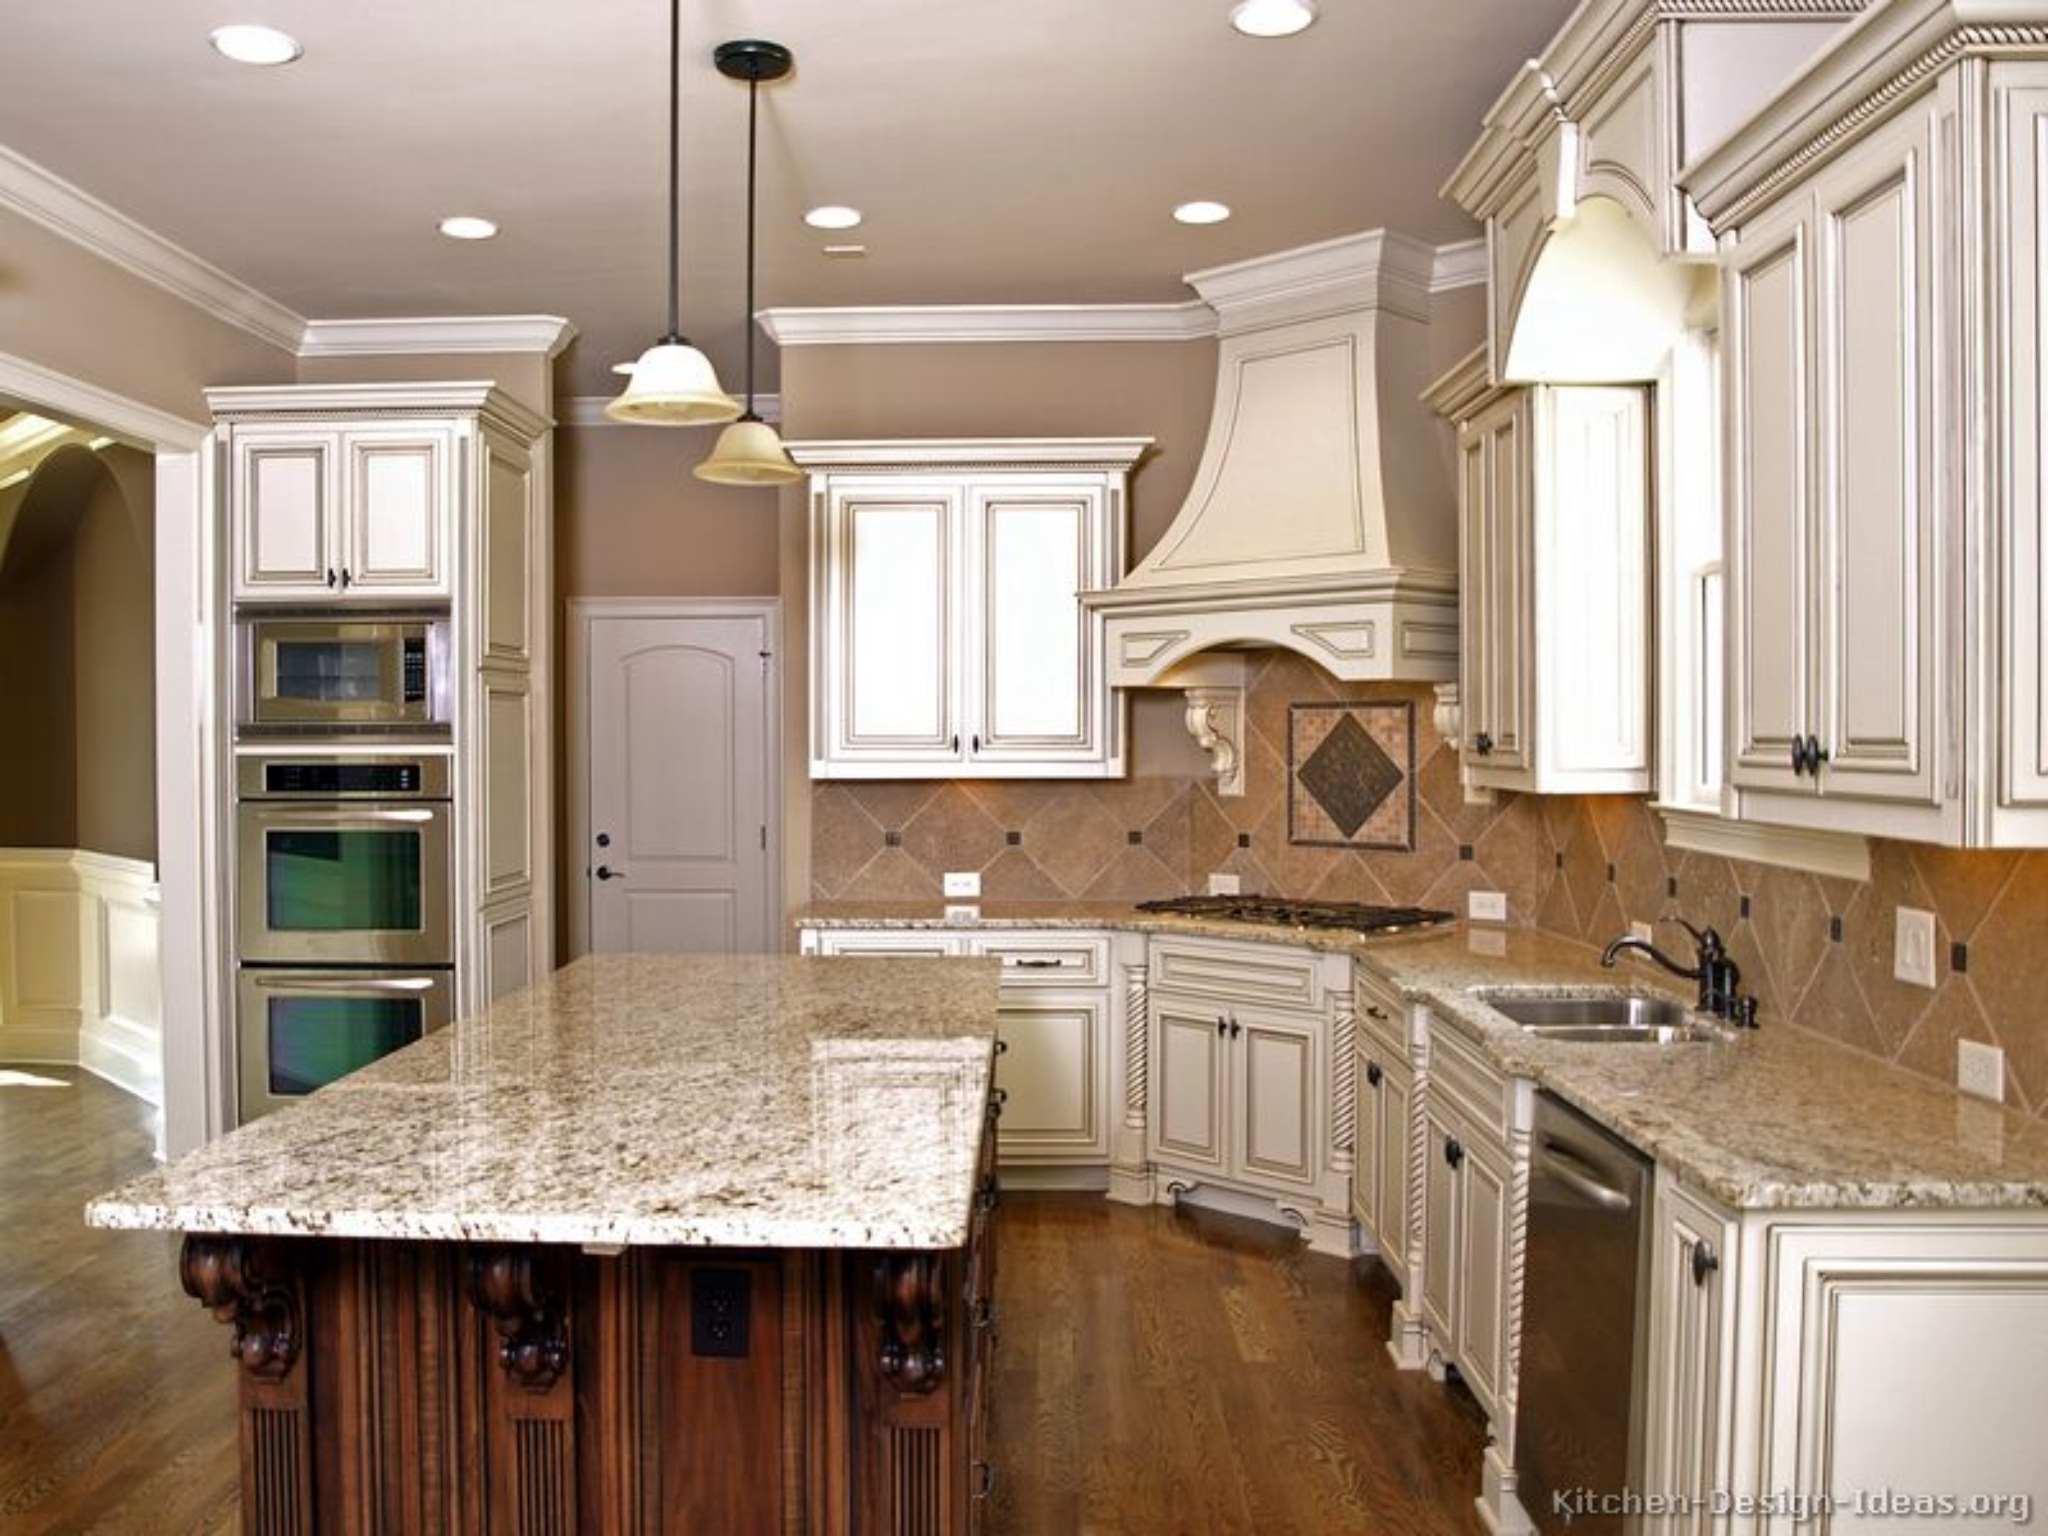 Design Kitchen Cabinets And Countertops